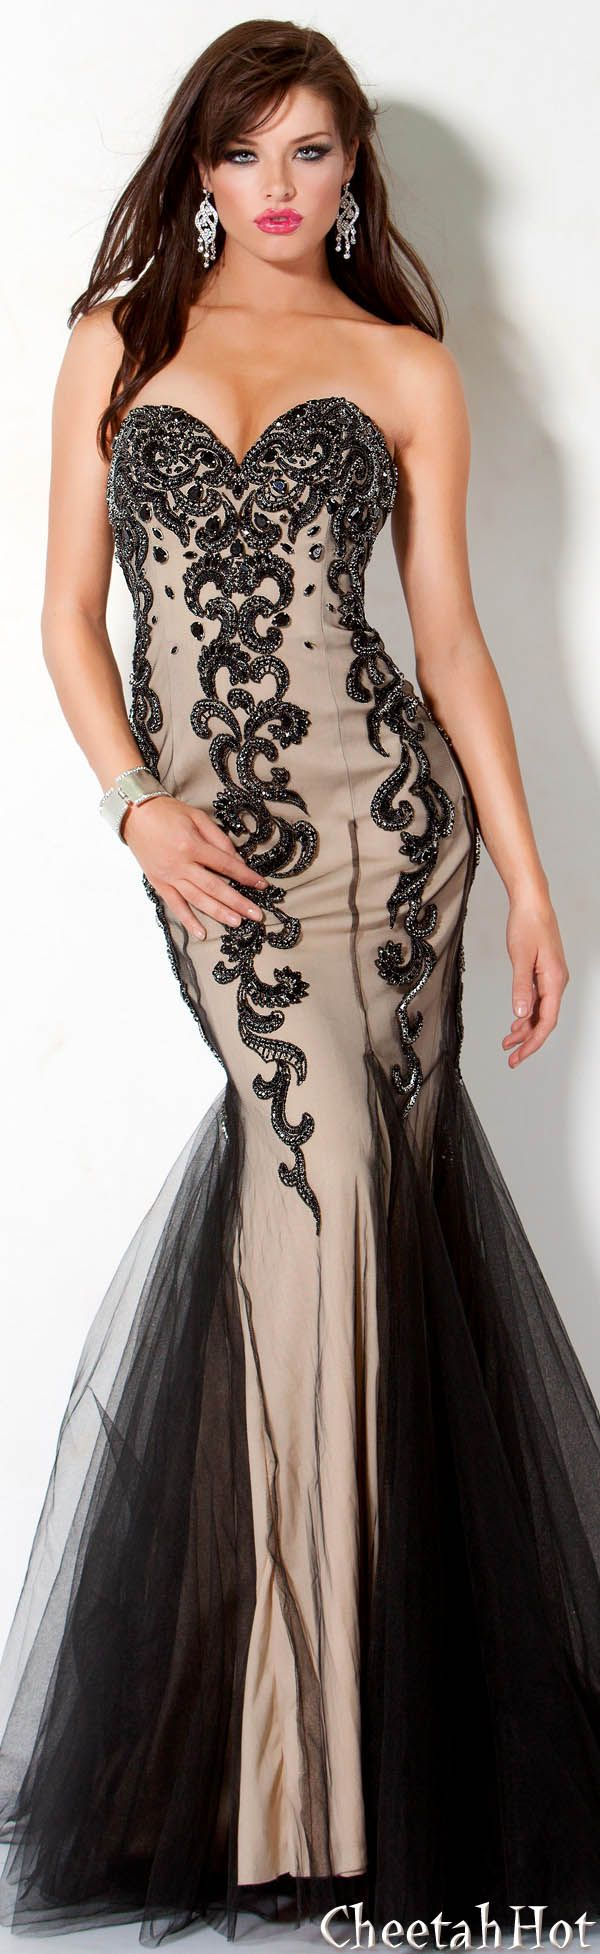 best Dresses images on Pinterest Edgy chic fashion My style